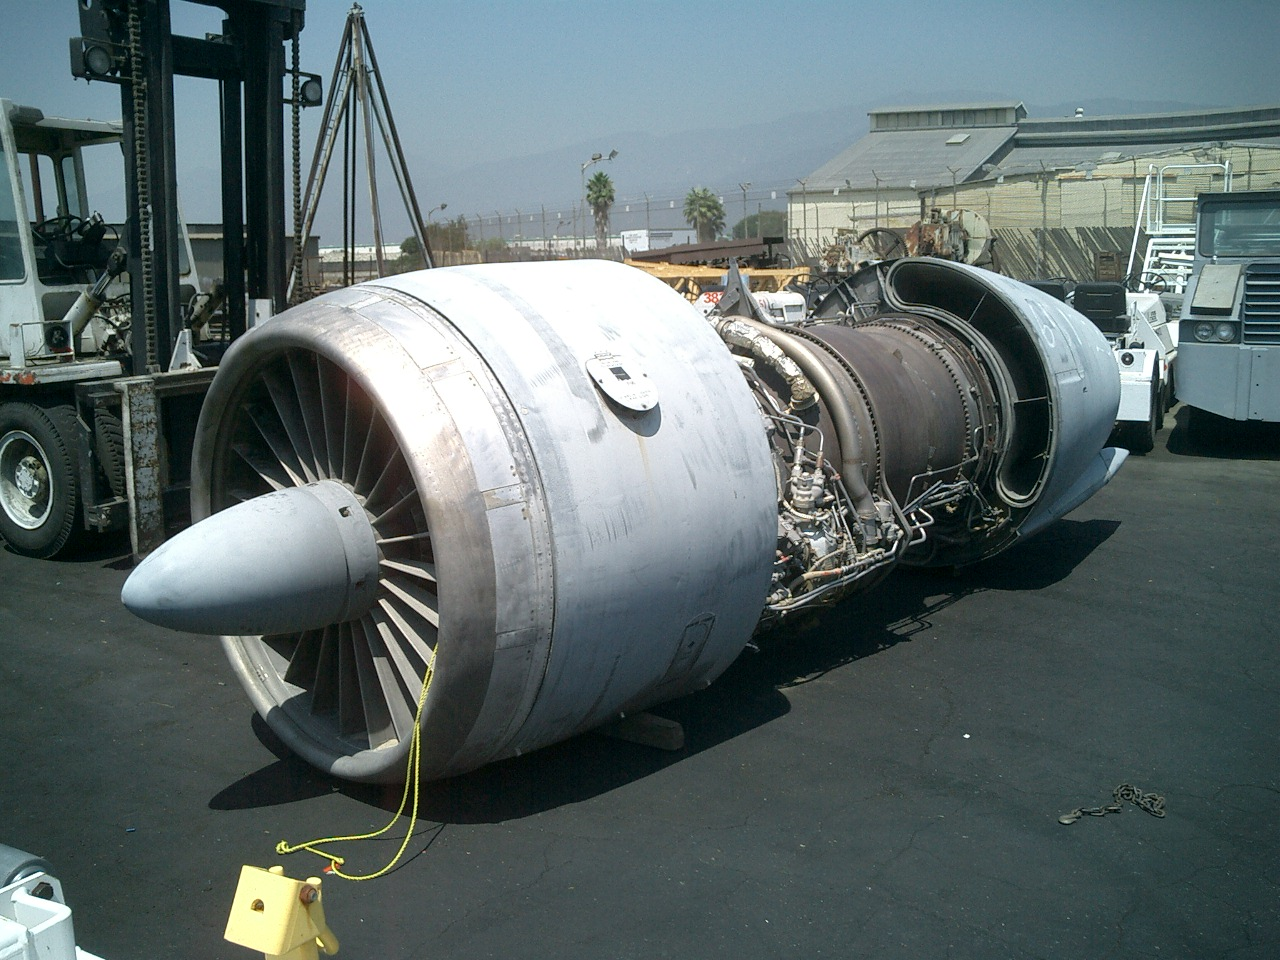 GE Turbo Fan Aircraft Engine | Planet GSE